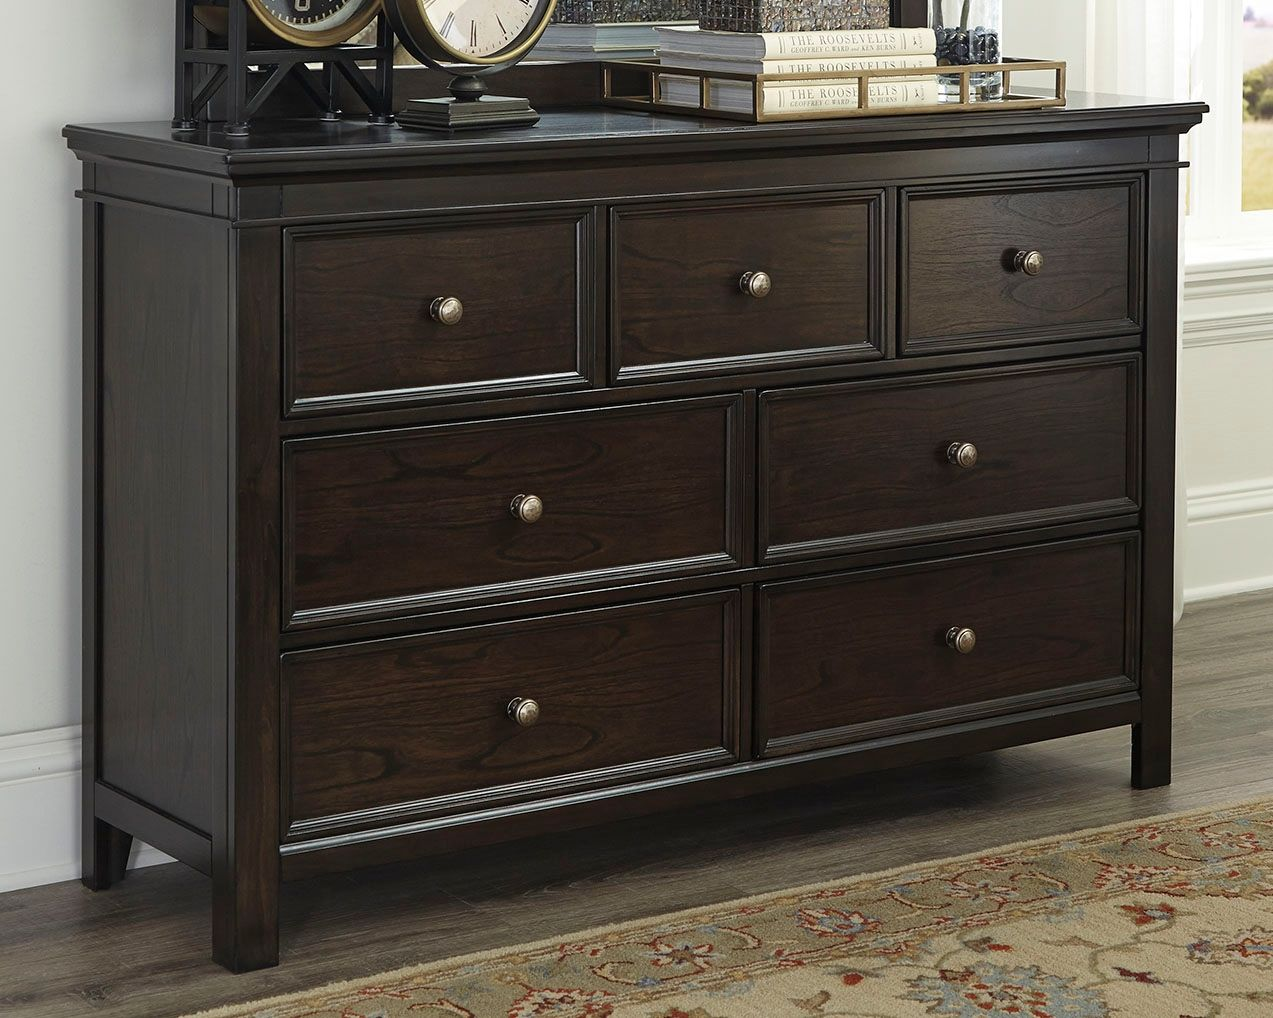 low priced 4d032 988c2 Alexee Dresser, Dark Brown | Products in 2019 | Shabby chic ...